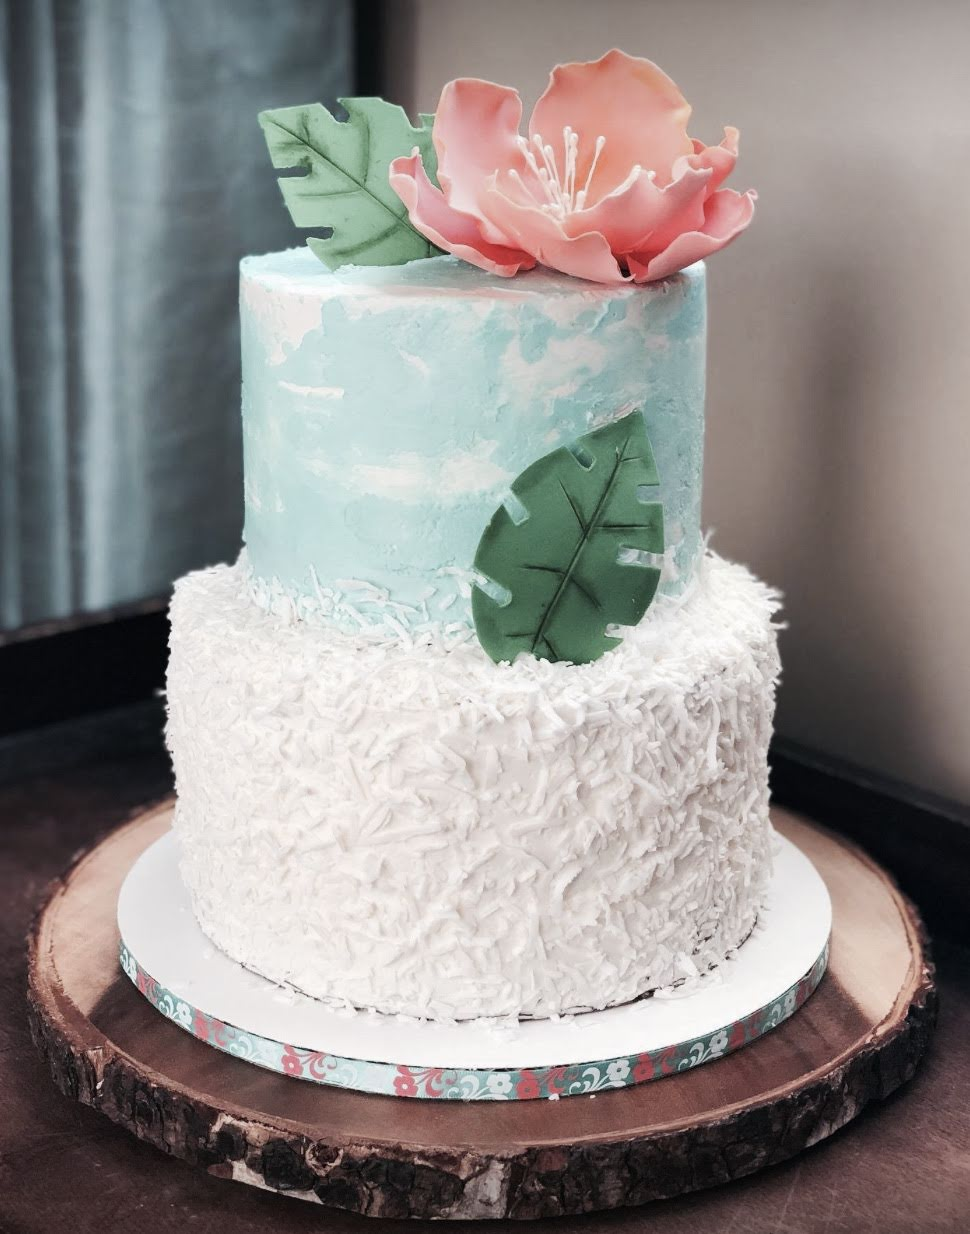 Tropical buttercream Celebratory Cake